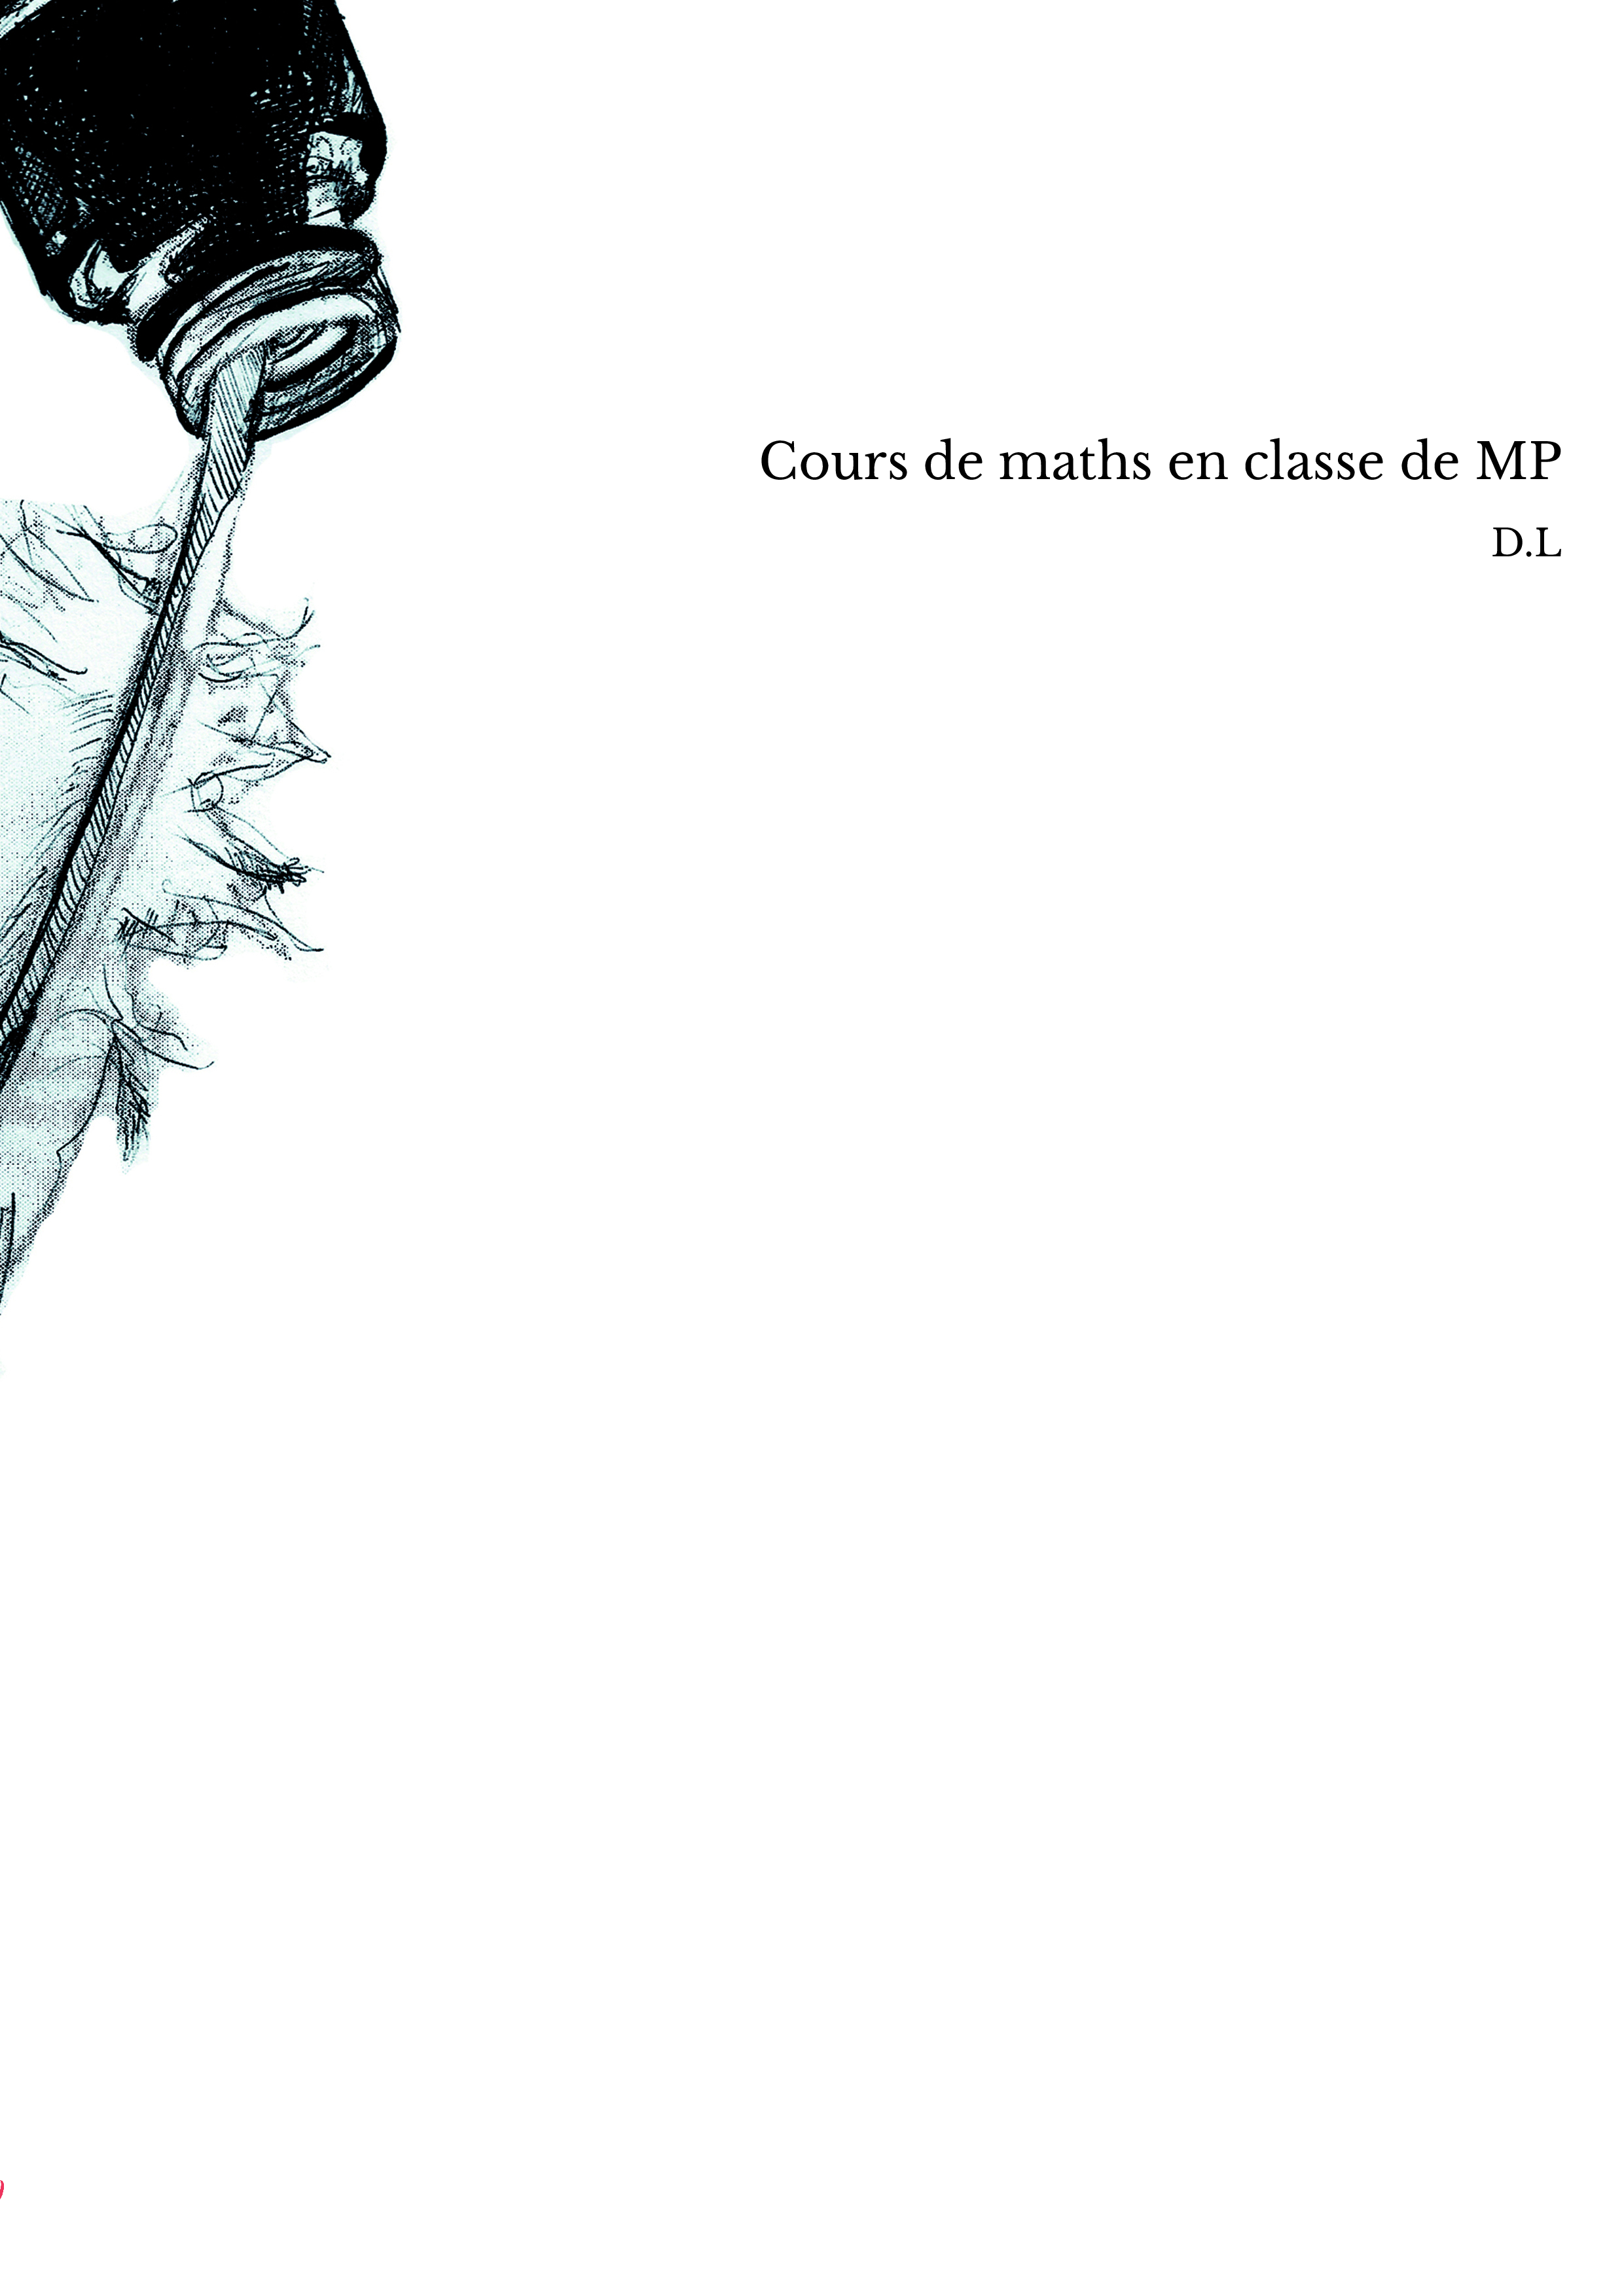 Cours de maths en classe de MP